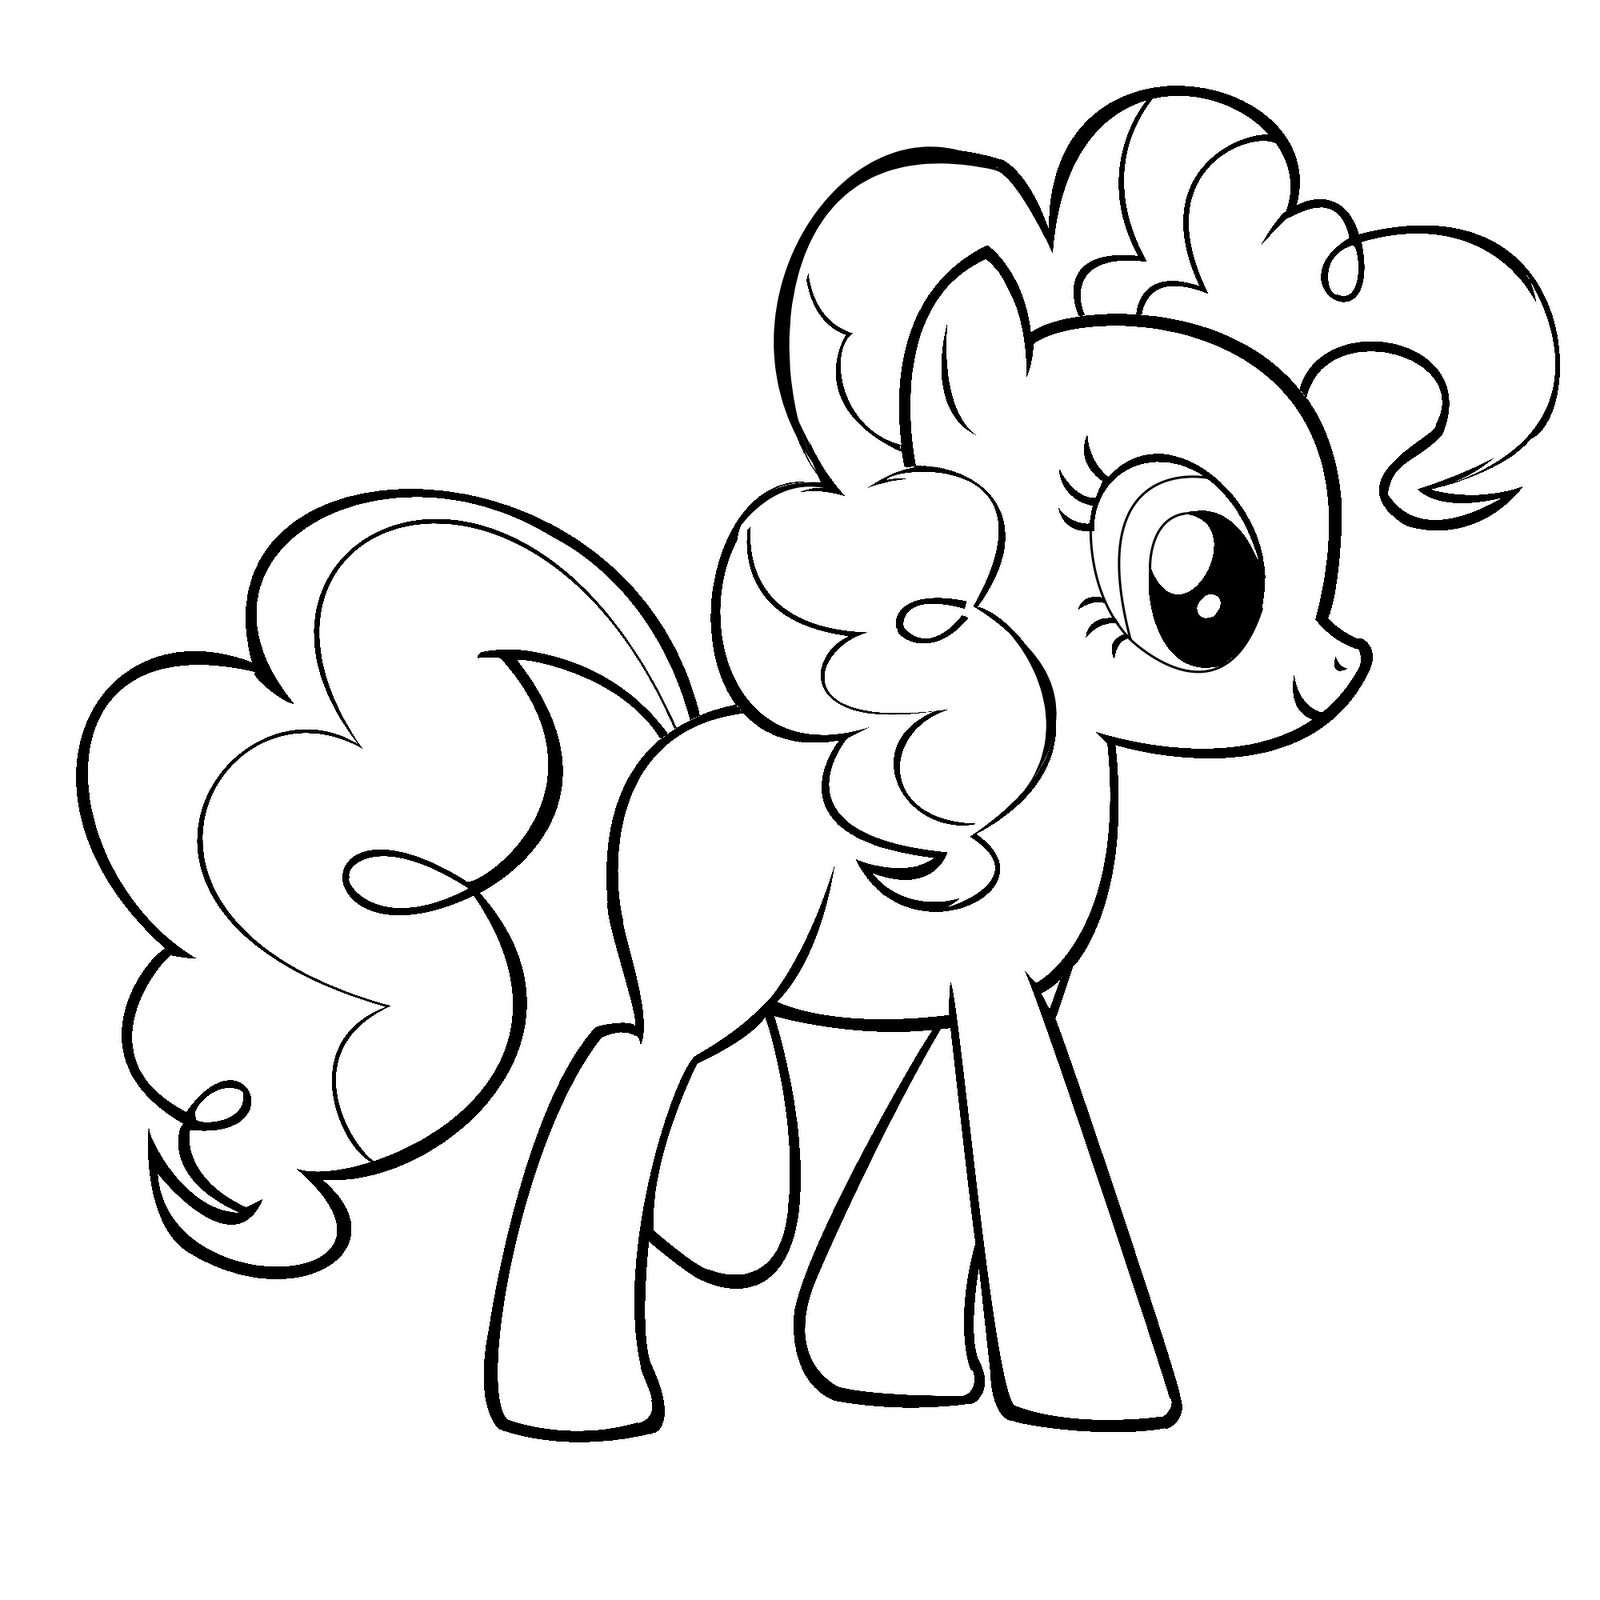 my little pony template my little pony drawing template at getdrawings free download pony template little my